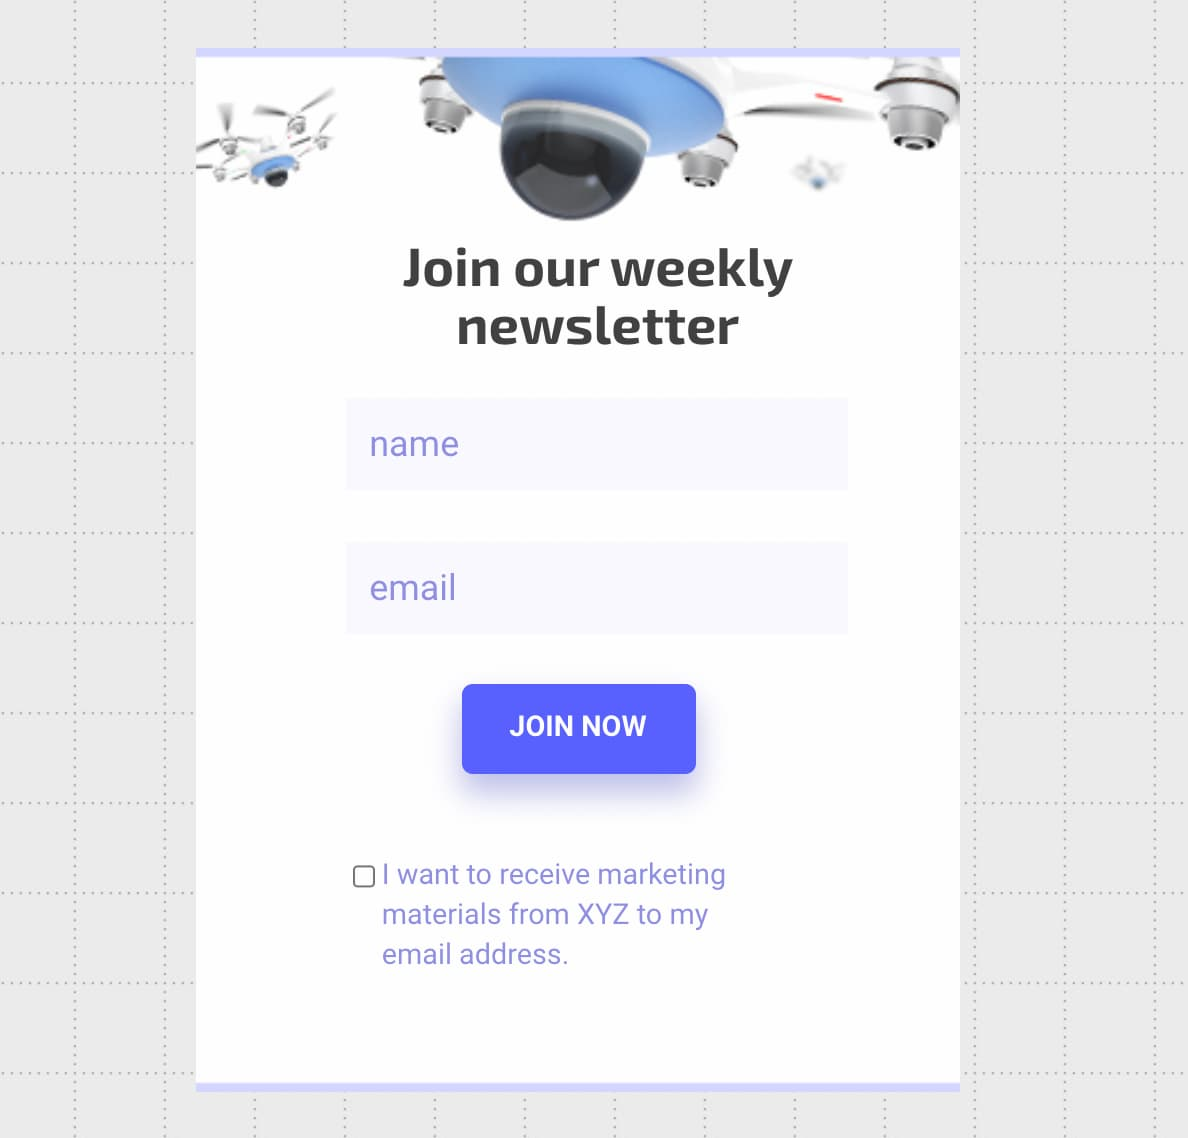 Newsletter subscription form created using GetResponse Signup Form Builder.